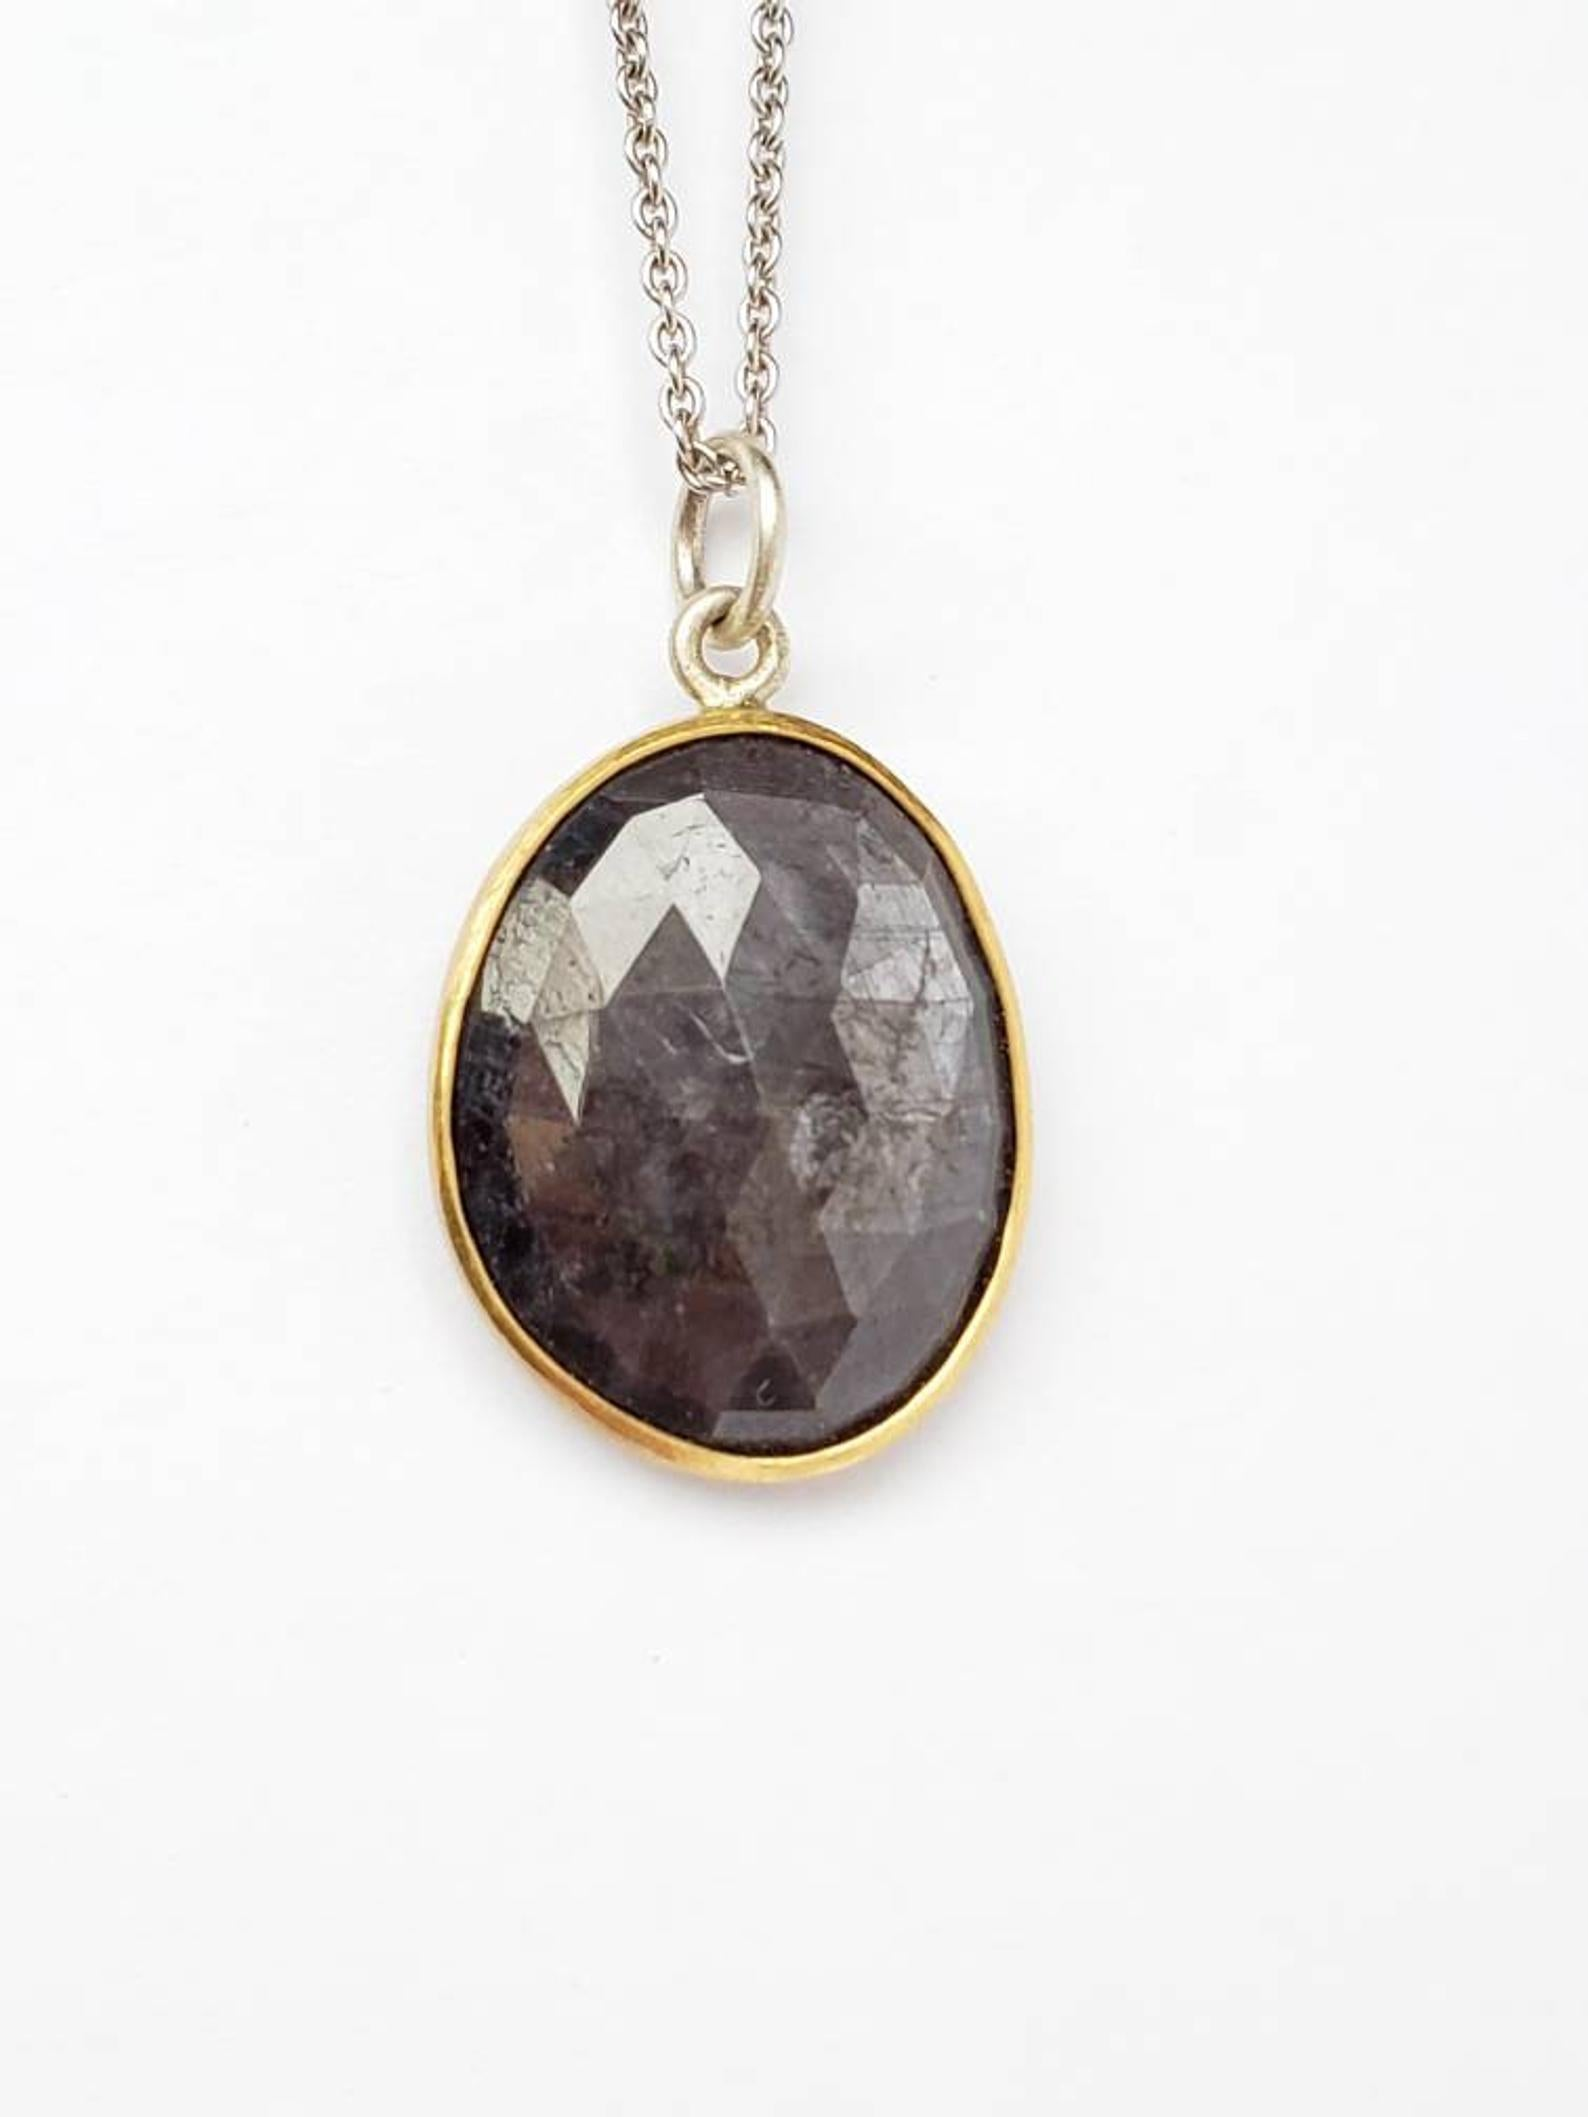 Black/Gray Sapphire Pendant , Set in 18k Gold, Sterling Silver, 9 Hearts